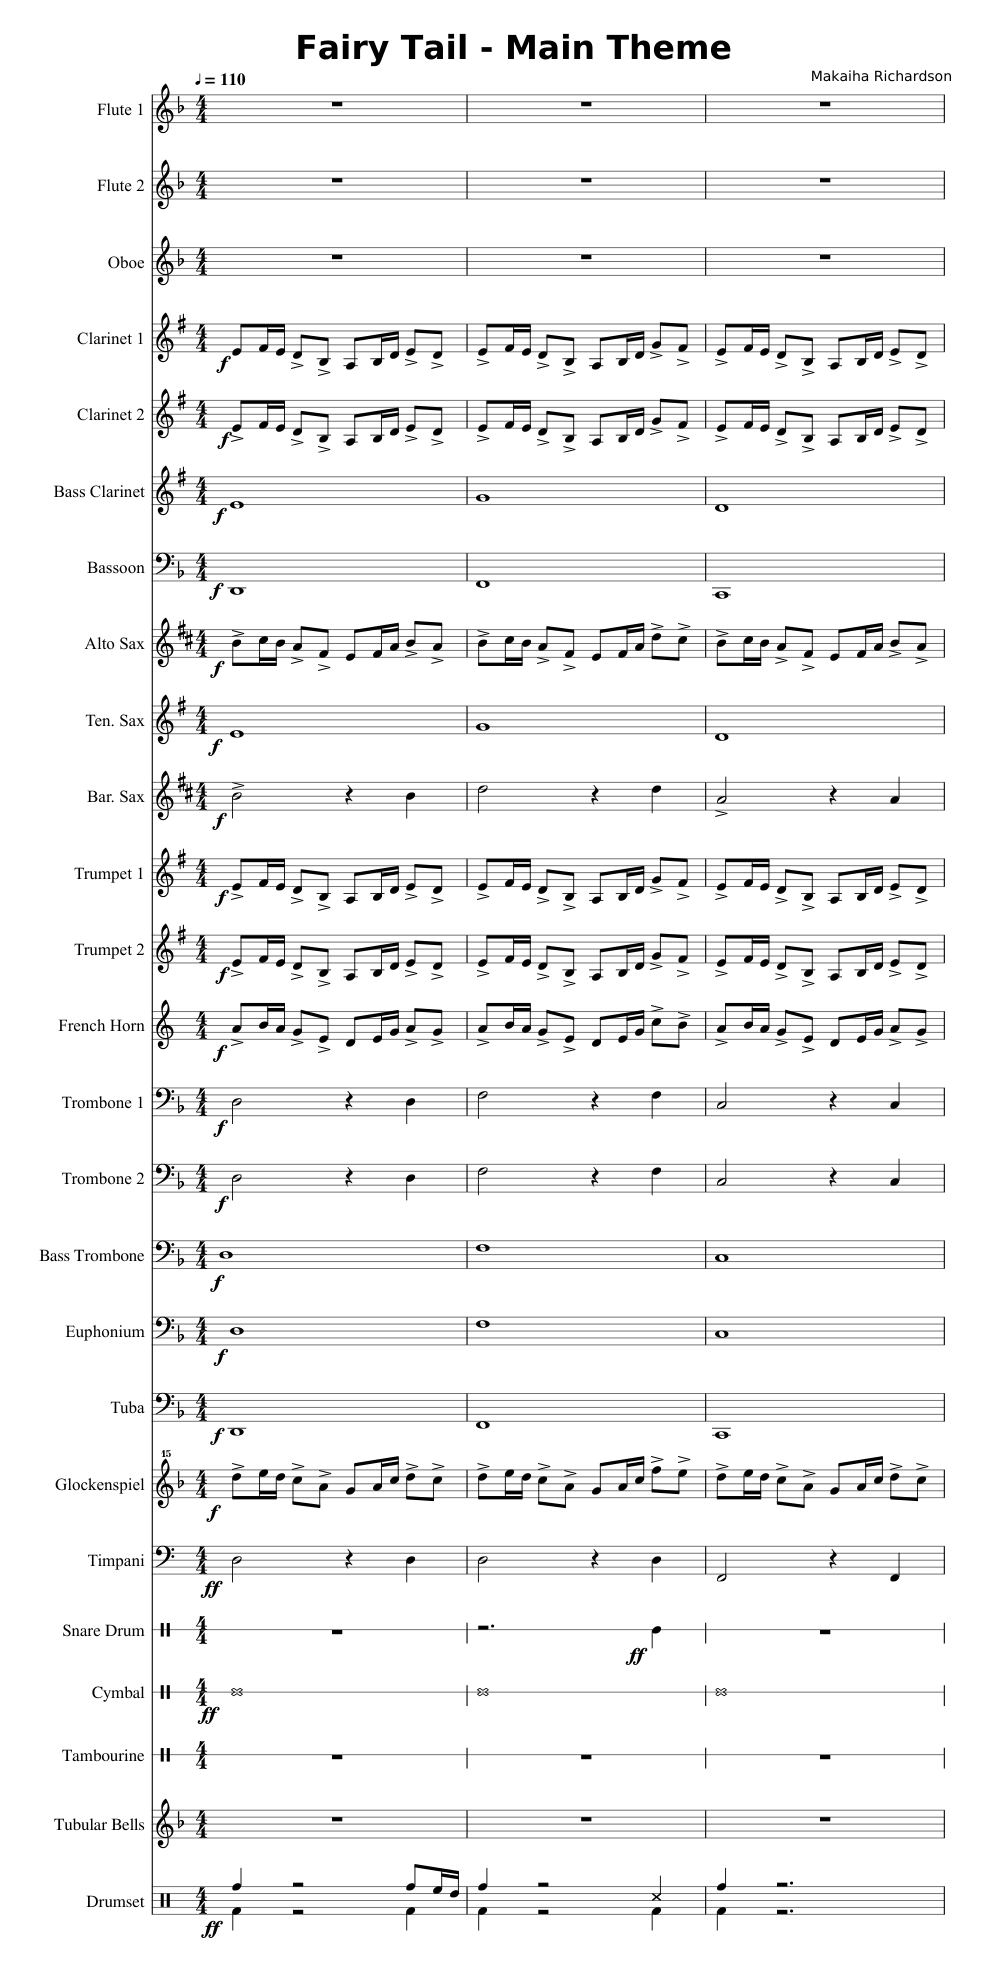 Fairy Tail Theme (Concert Band) sheet music for Flute